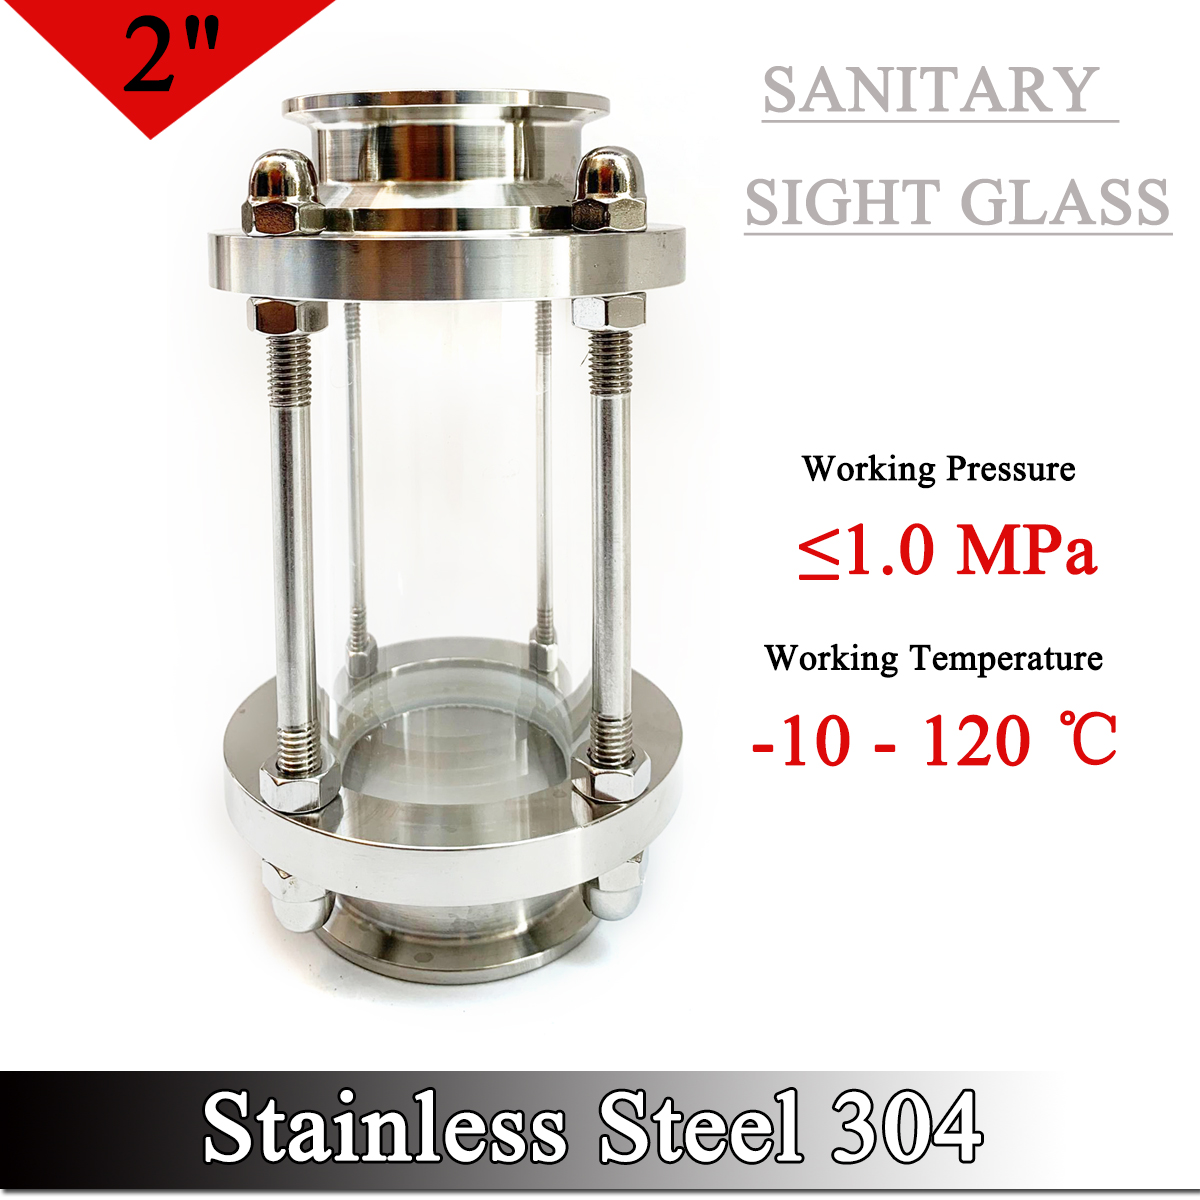 3 Sanitary Sight Glass Stainless Steel SS304 in-Line Sight Glass with Clamp End 3 OD:76MM Flow Sanitary Straight Sight Glass Tri-clamp